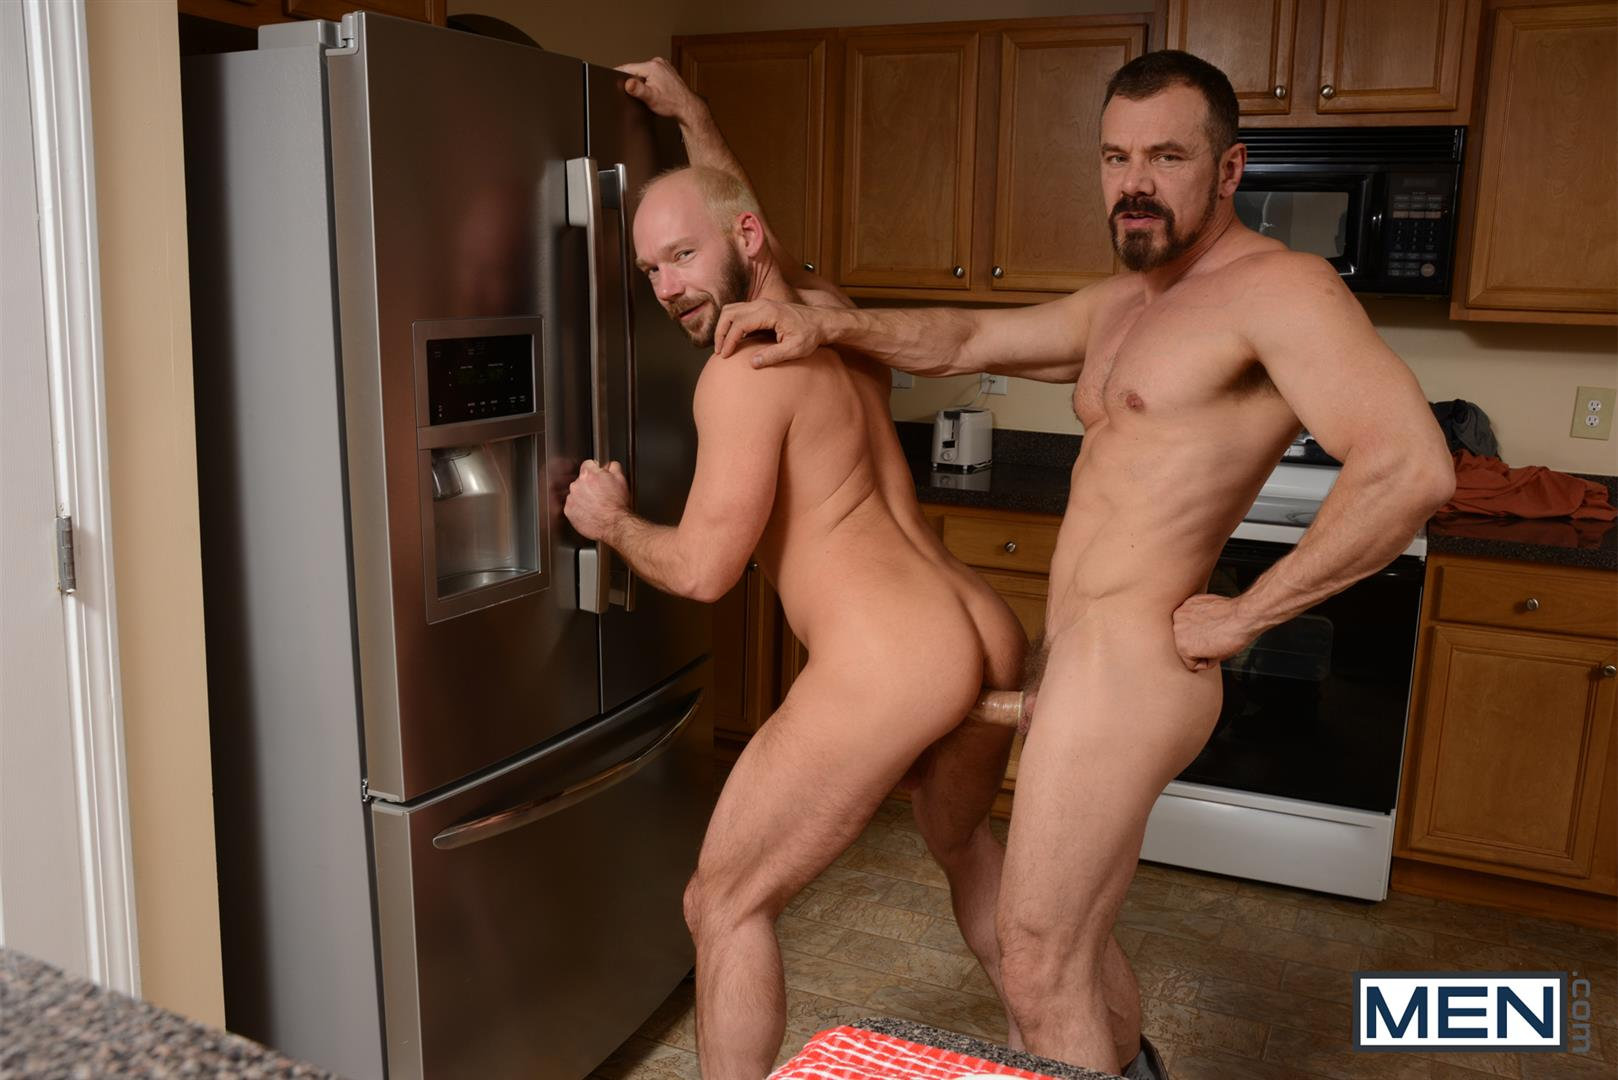 Men Drill My Hole Max Sargent and Mike Tanner Thick Cock Daddys Fucking Amateur Gay Porn 06 Hairy Muscle Daddys Fucking In The Kitchen And Eating Cum